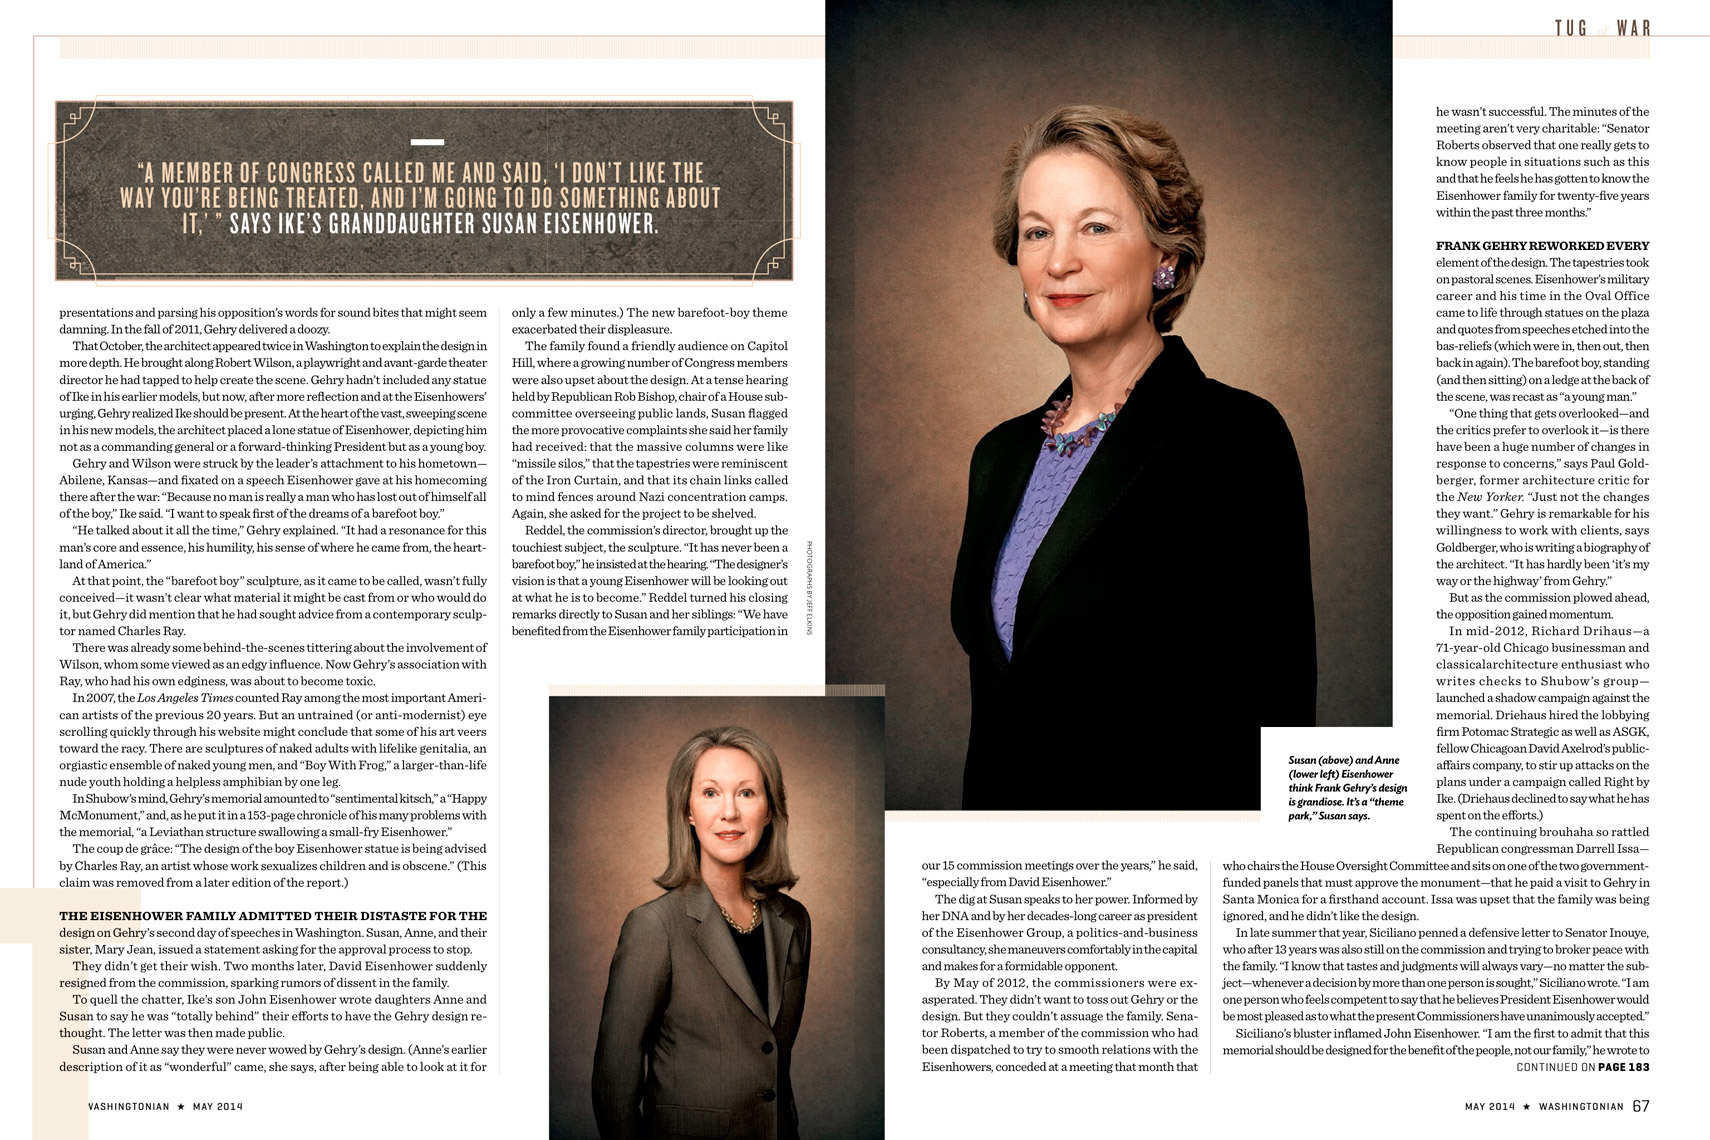 Washingtonian Magazine - May2014 - Anne and Susan Eisenhower